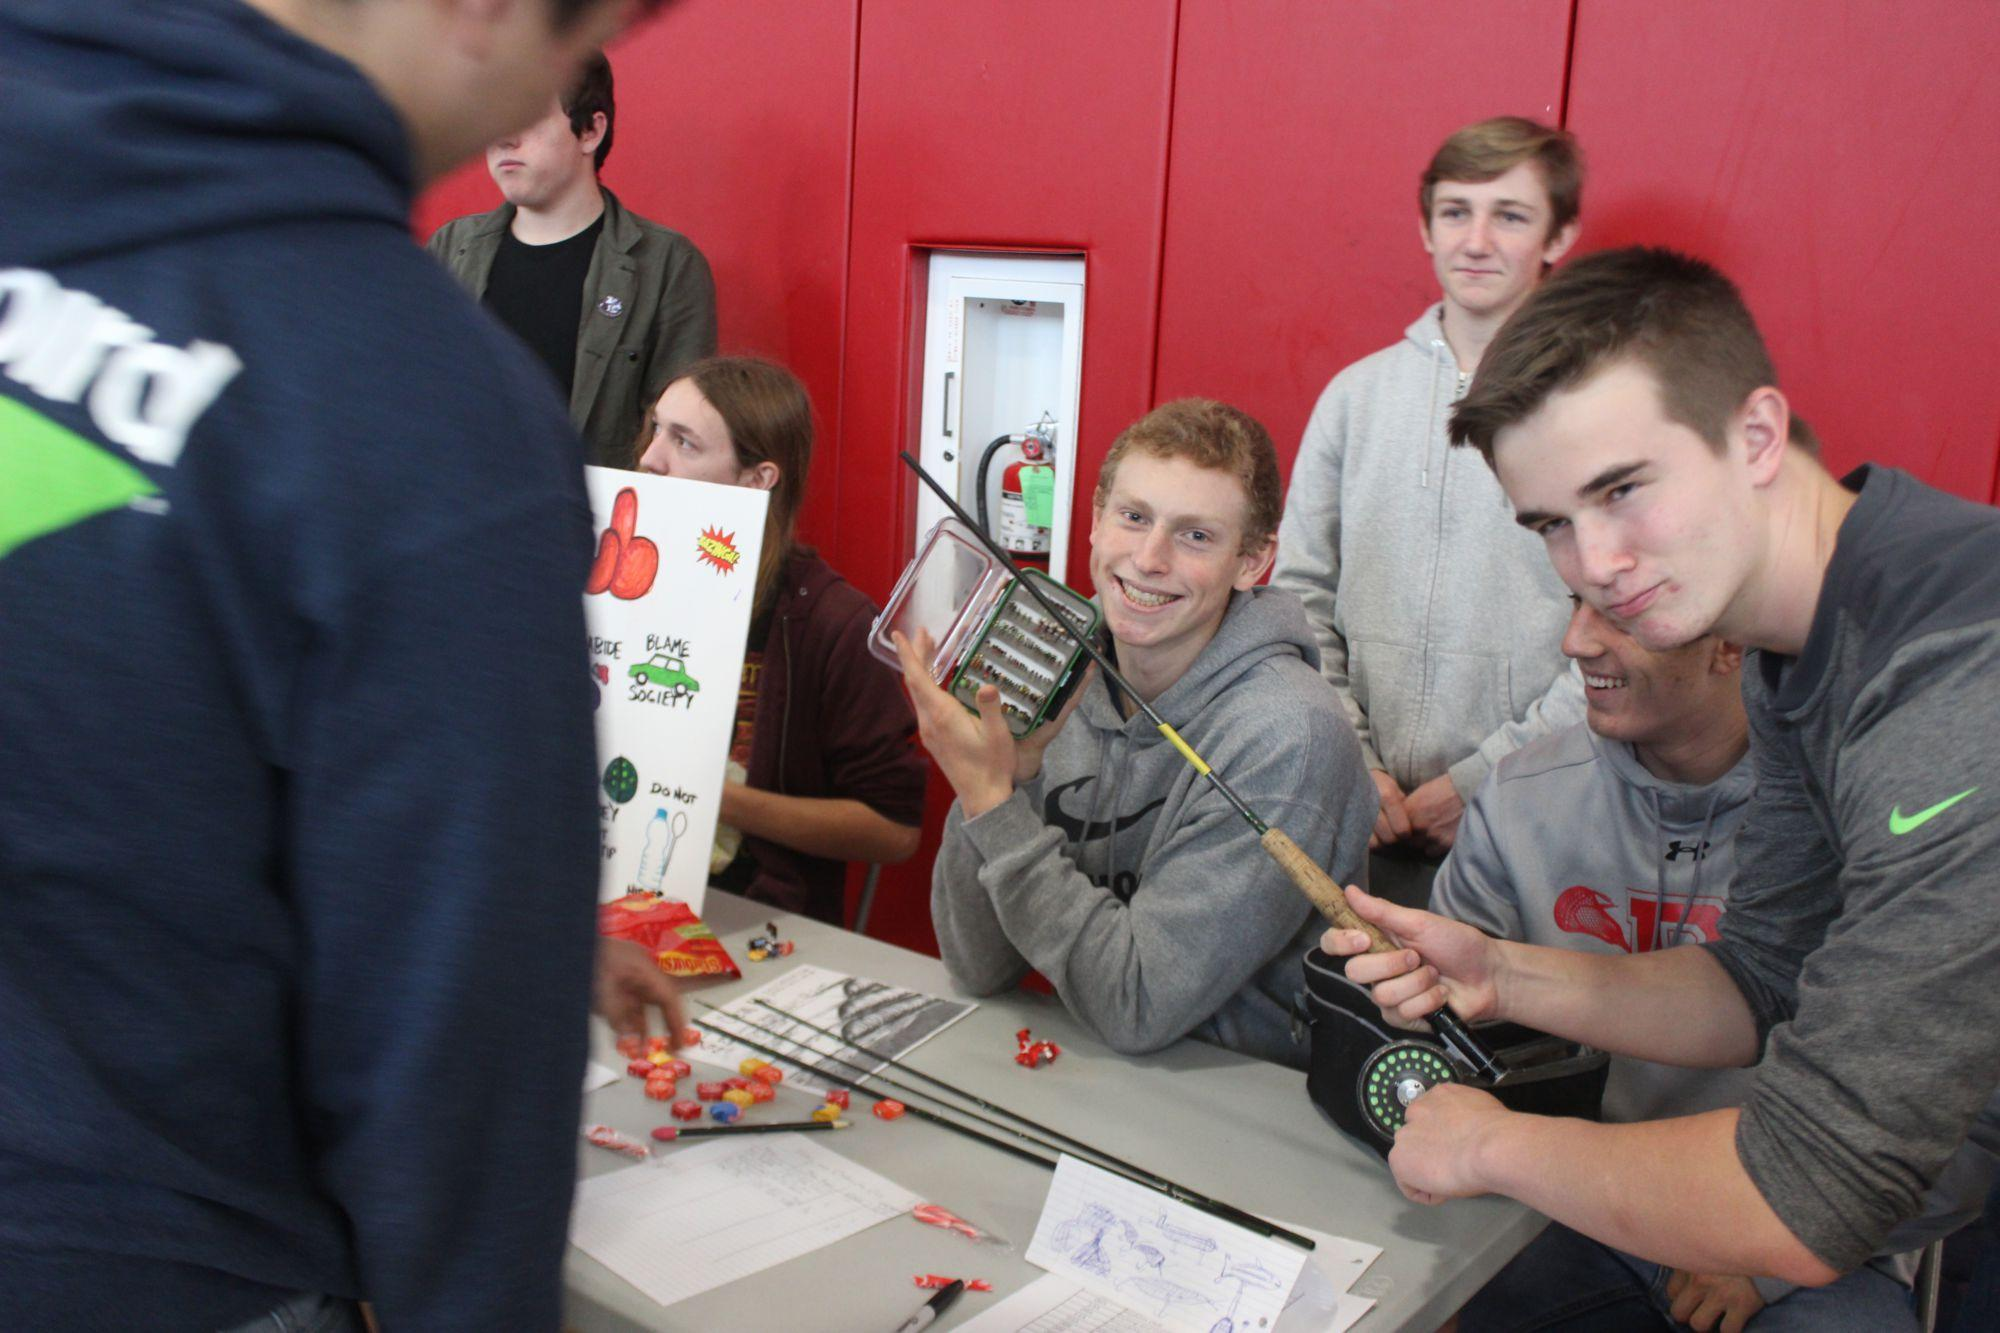 Club day encourages students to join new activities